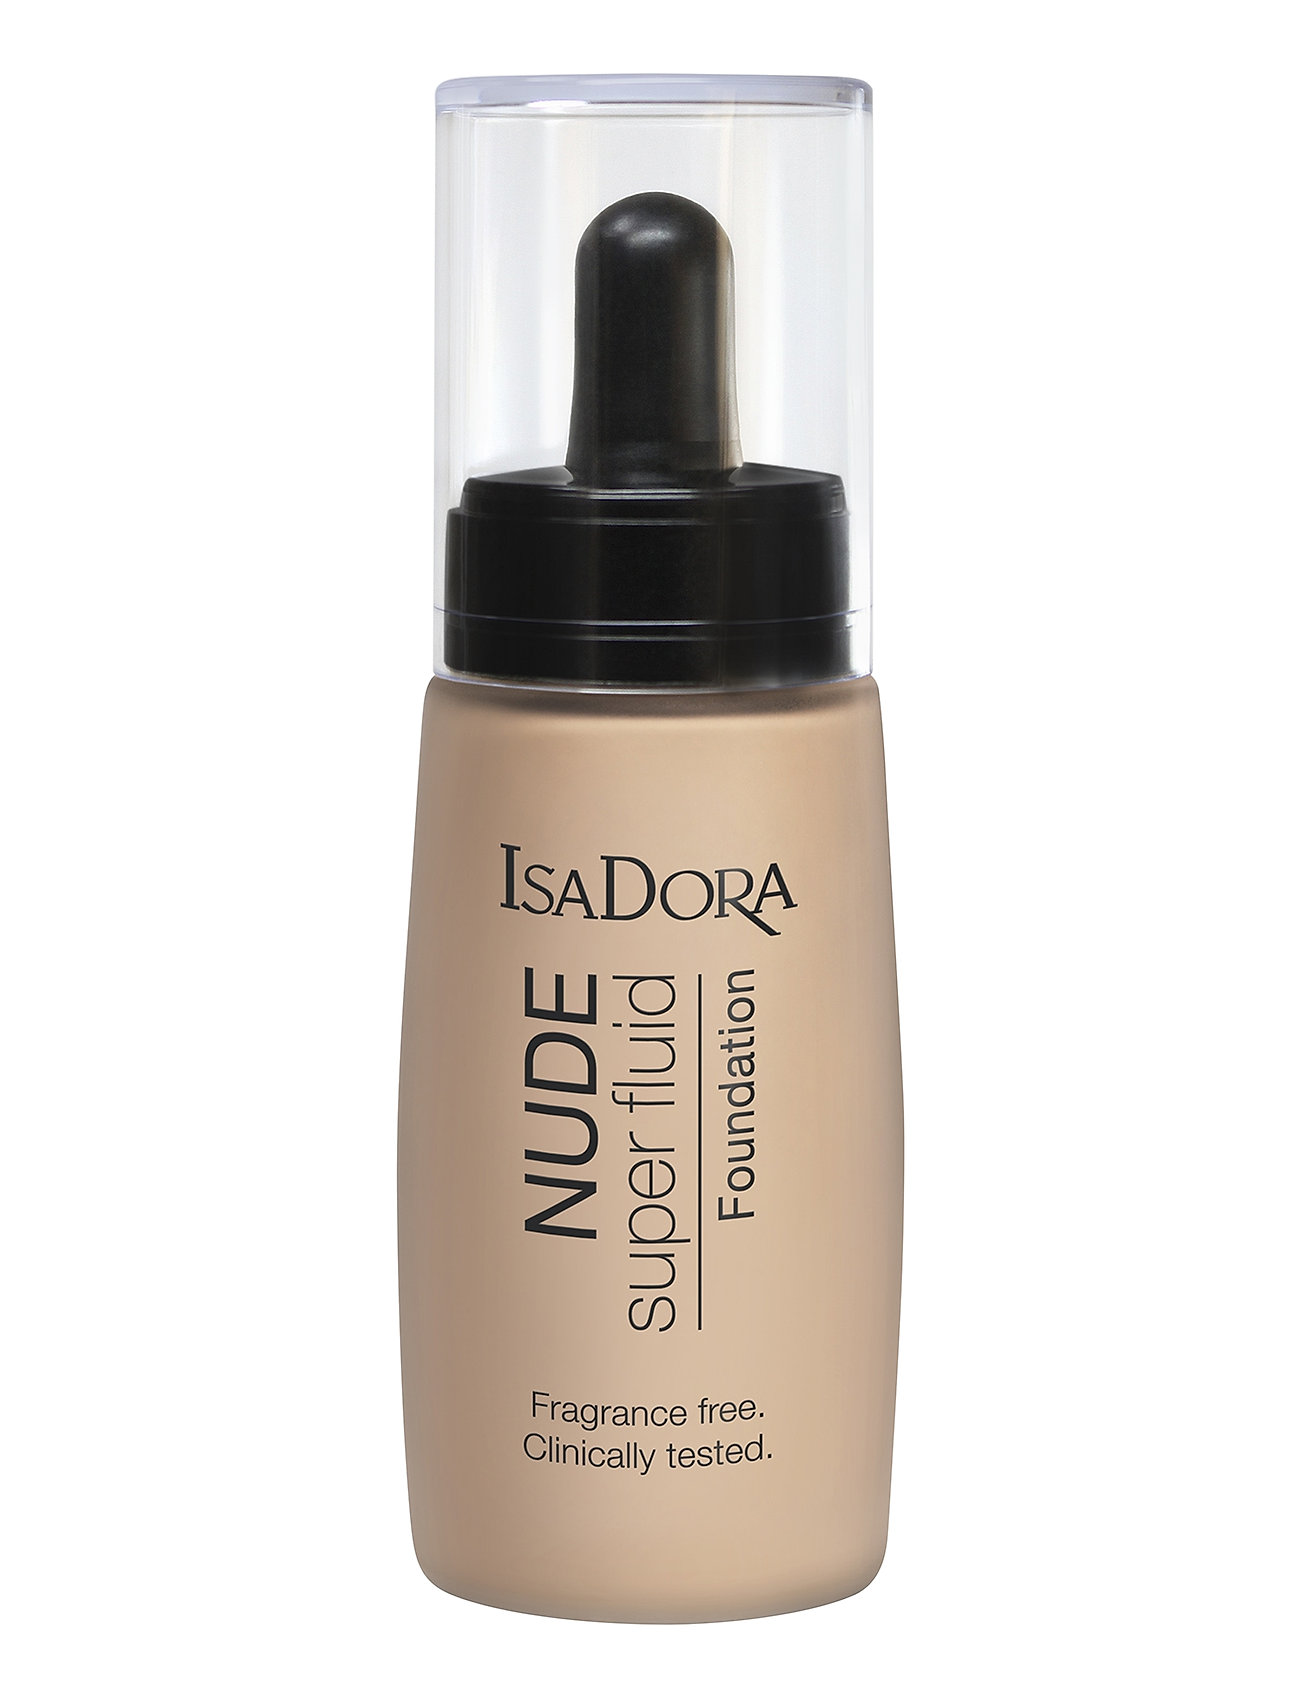 Image of Nude Super Fluid Fundation Nude Blonde Foundation Makeup Isadora (3436044055)